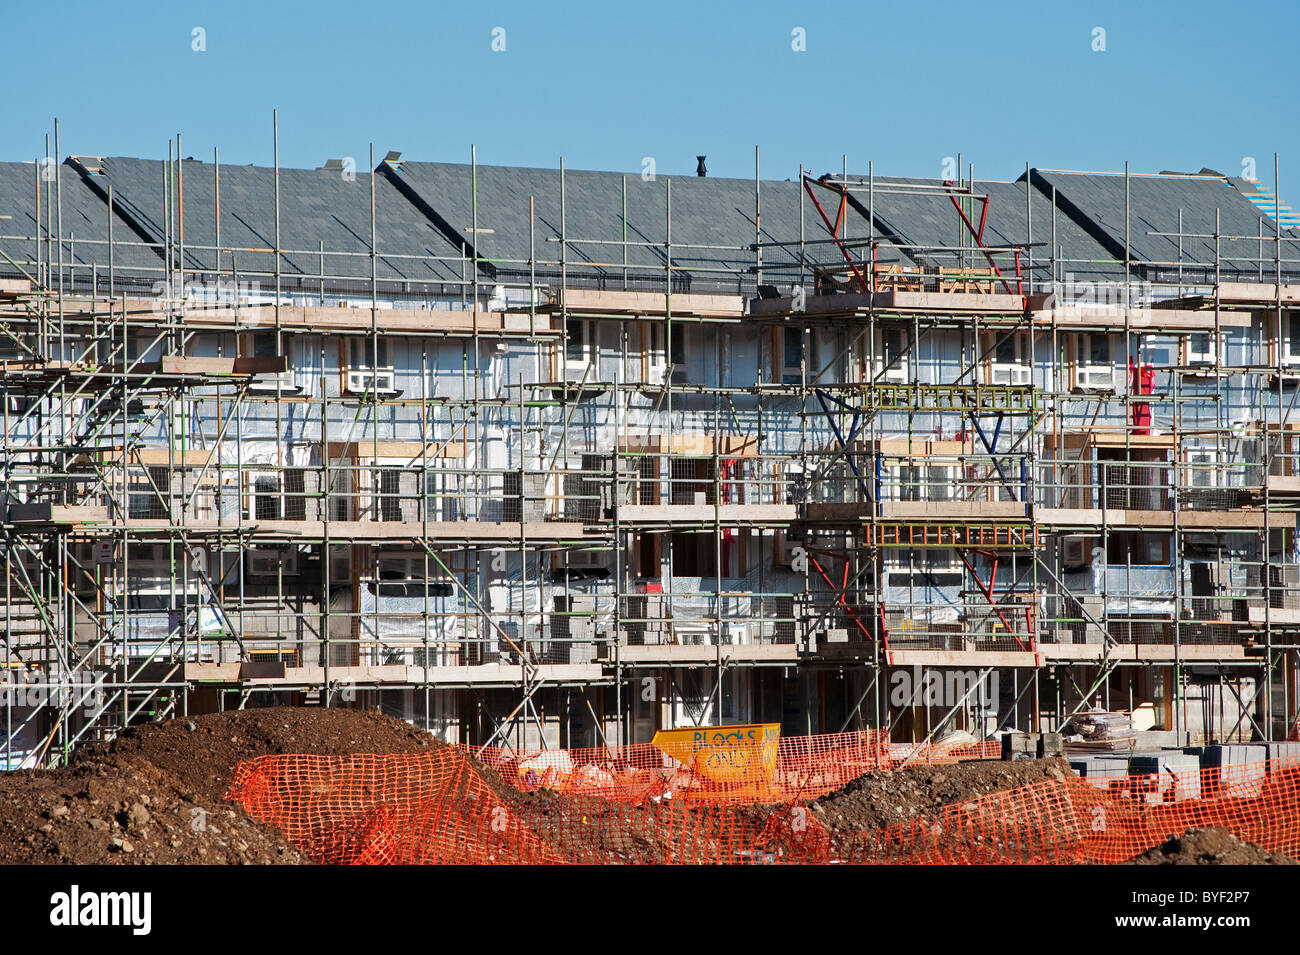 an affordable housing scheme under construction near bristol, uk - Stock Image